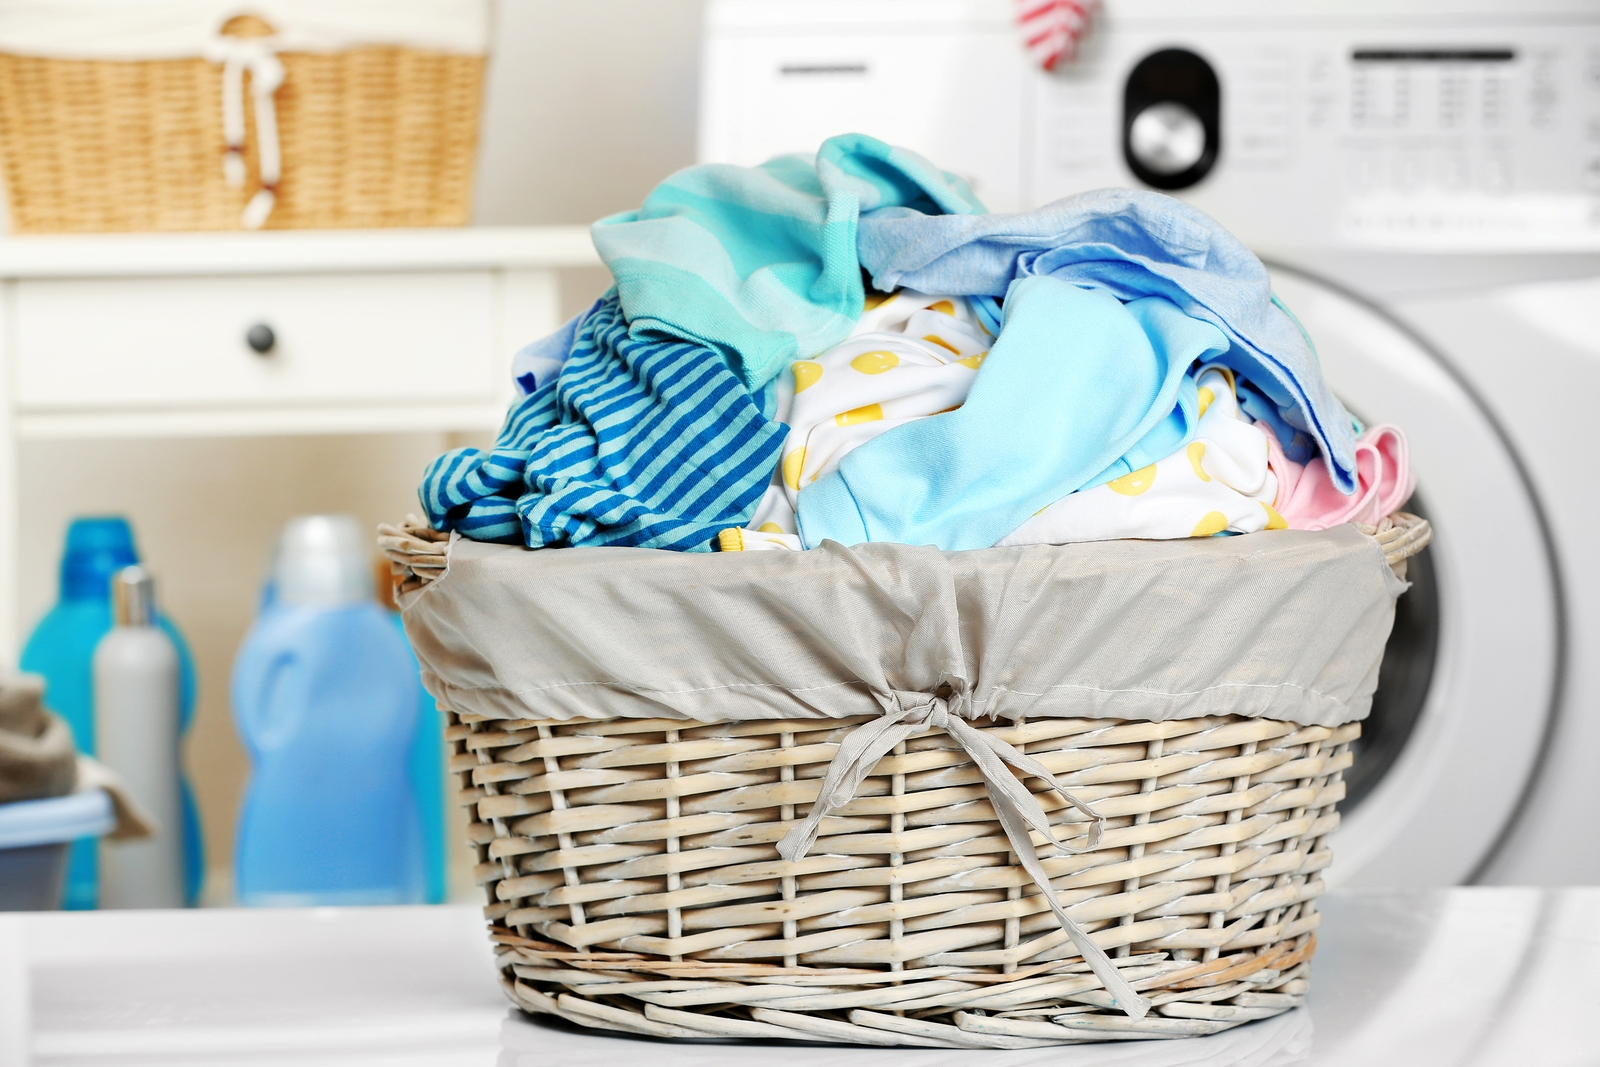 bigstock-Clothes-in-wicker-basket-at-la-168301703